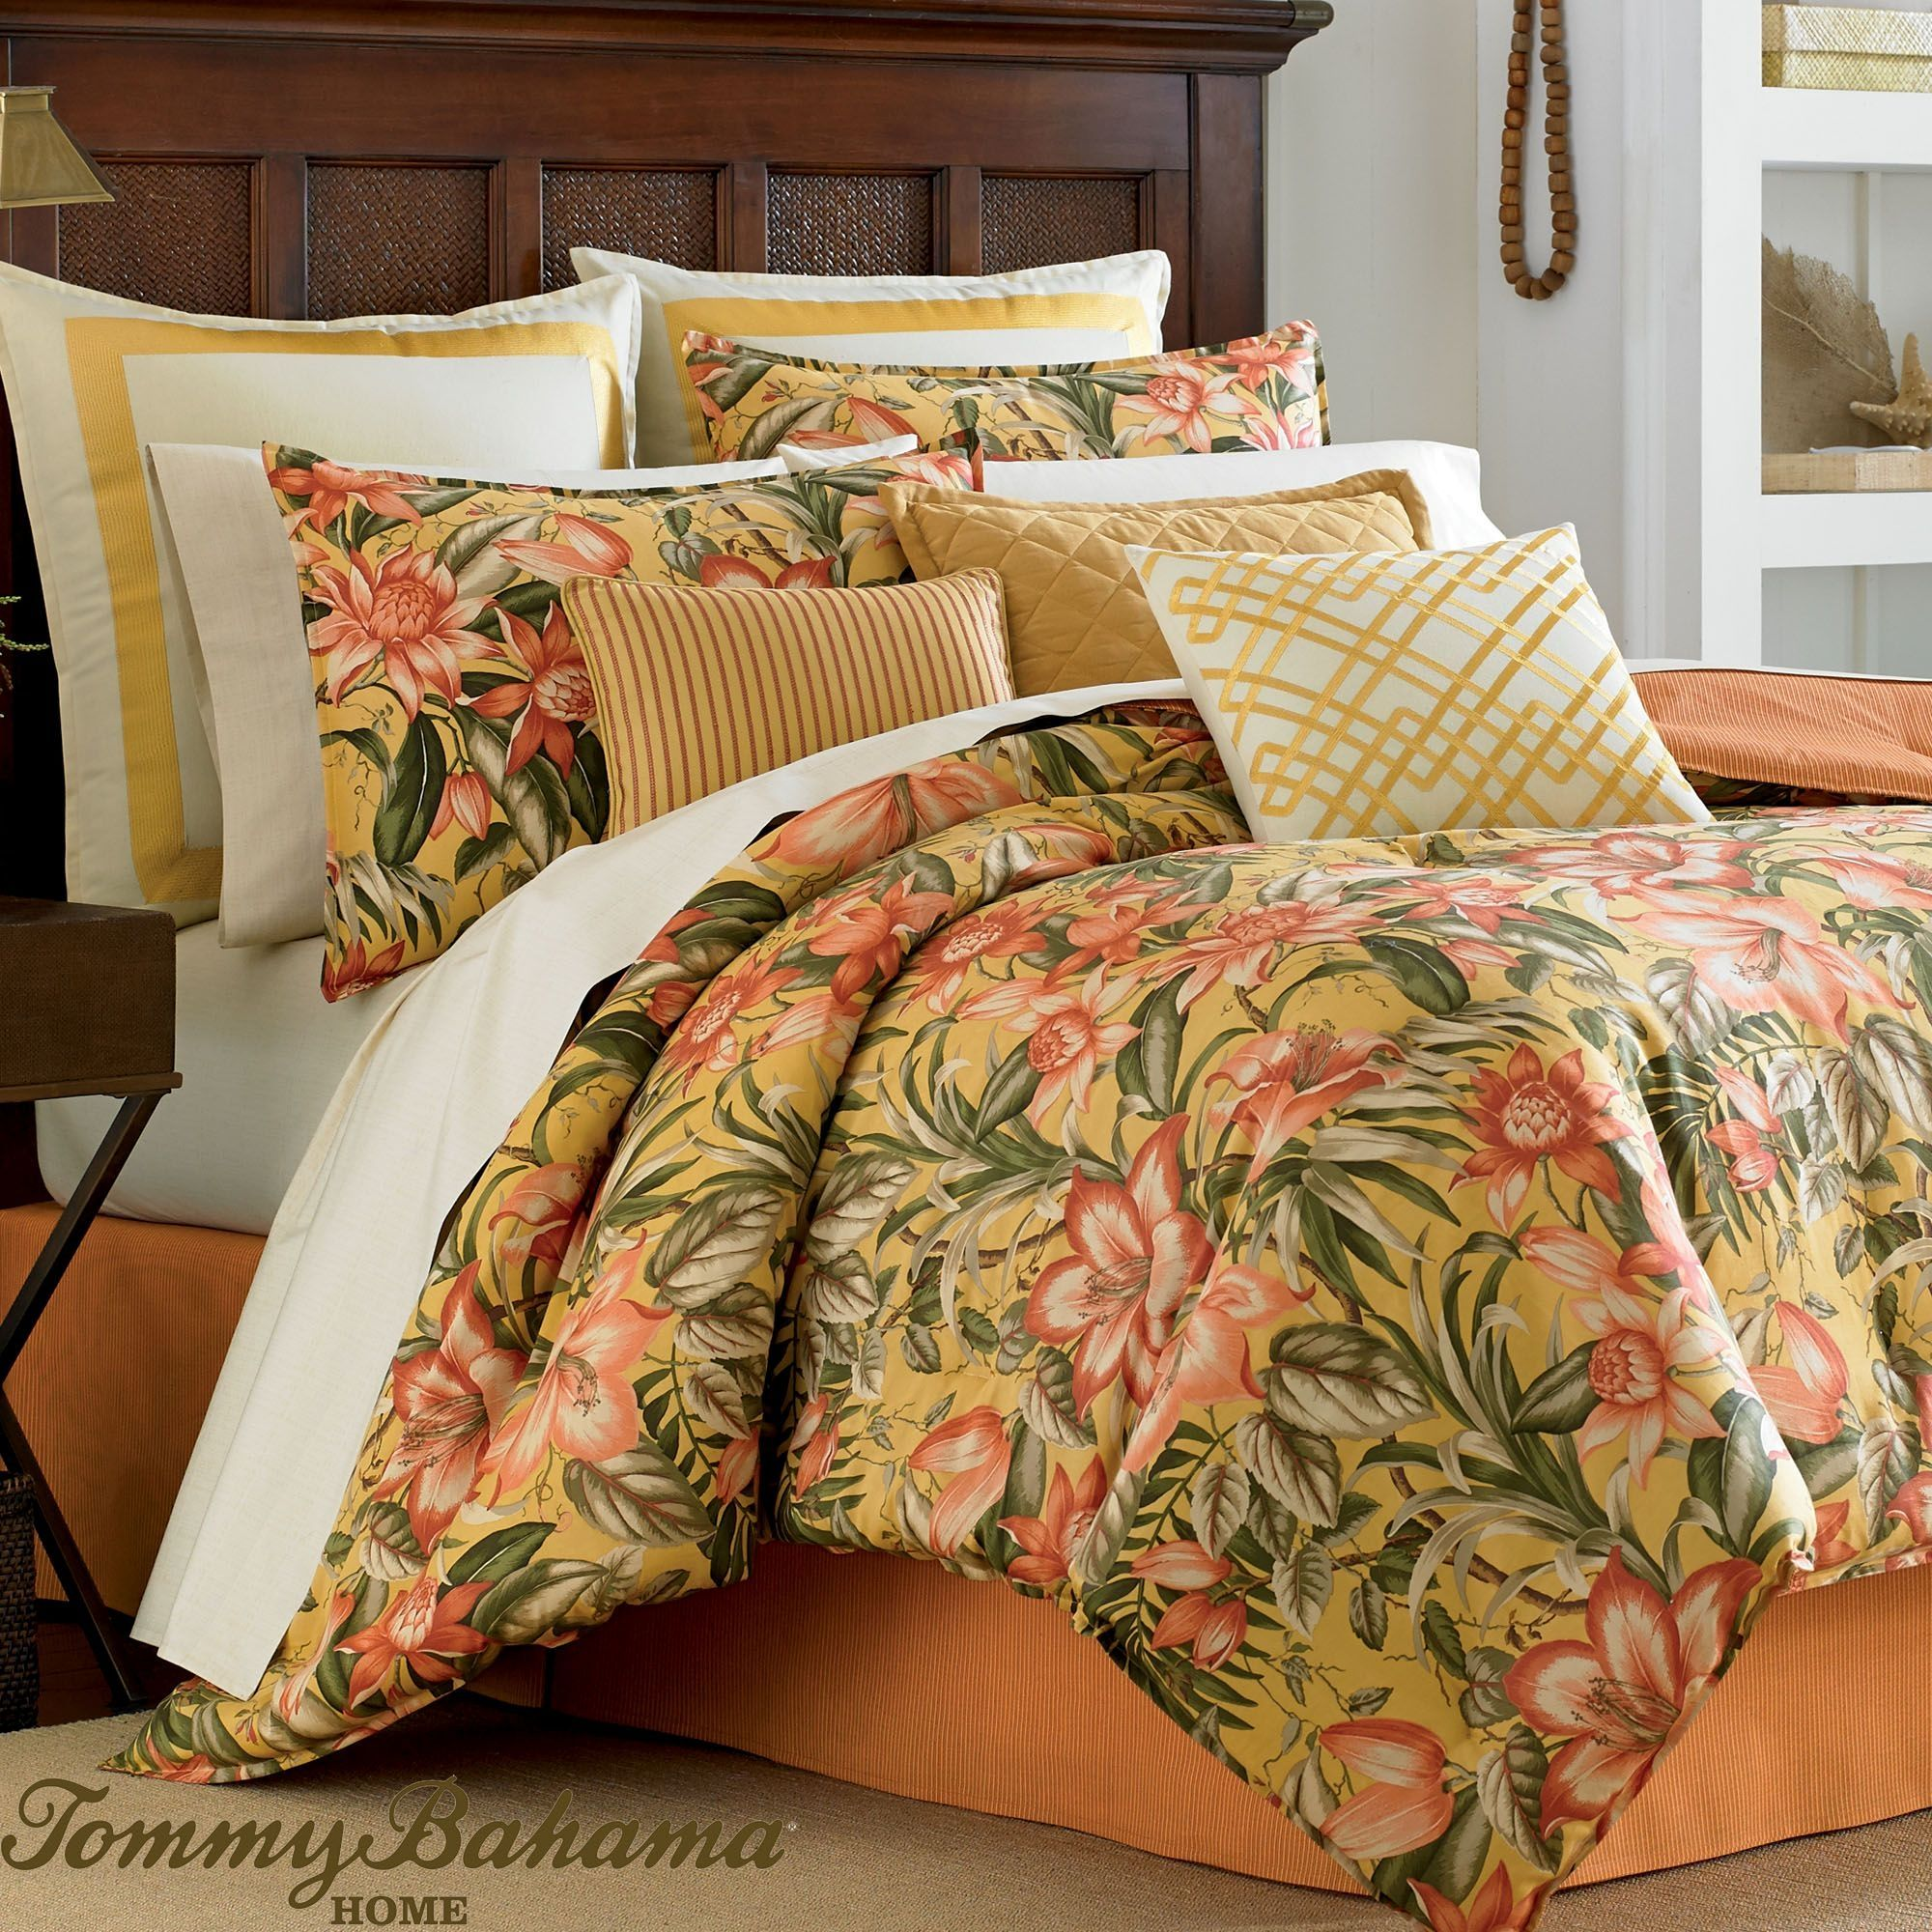 The Most Bedroom Stunning Tommy Bahama Bedding Design For Bedroom